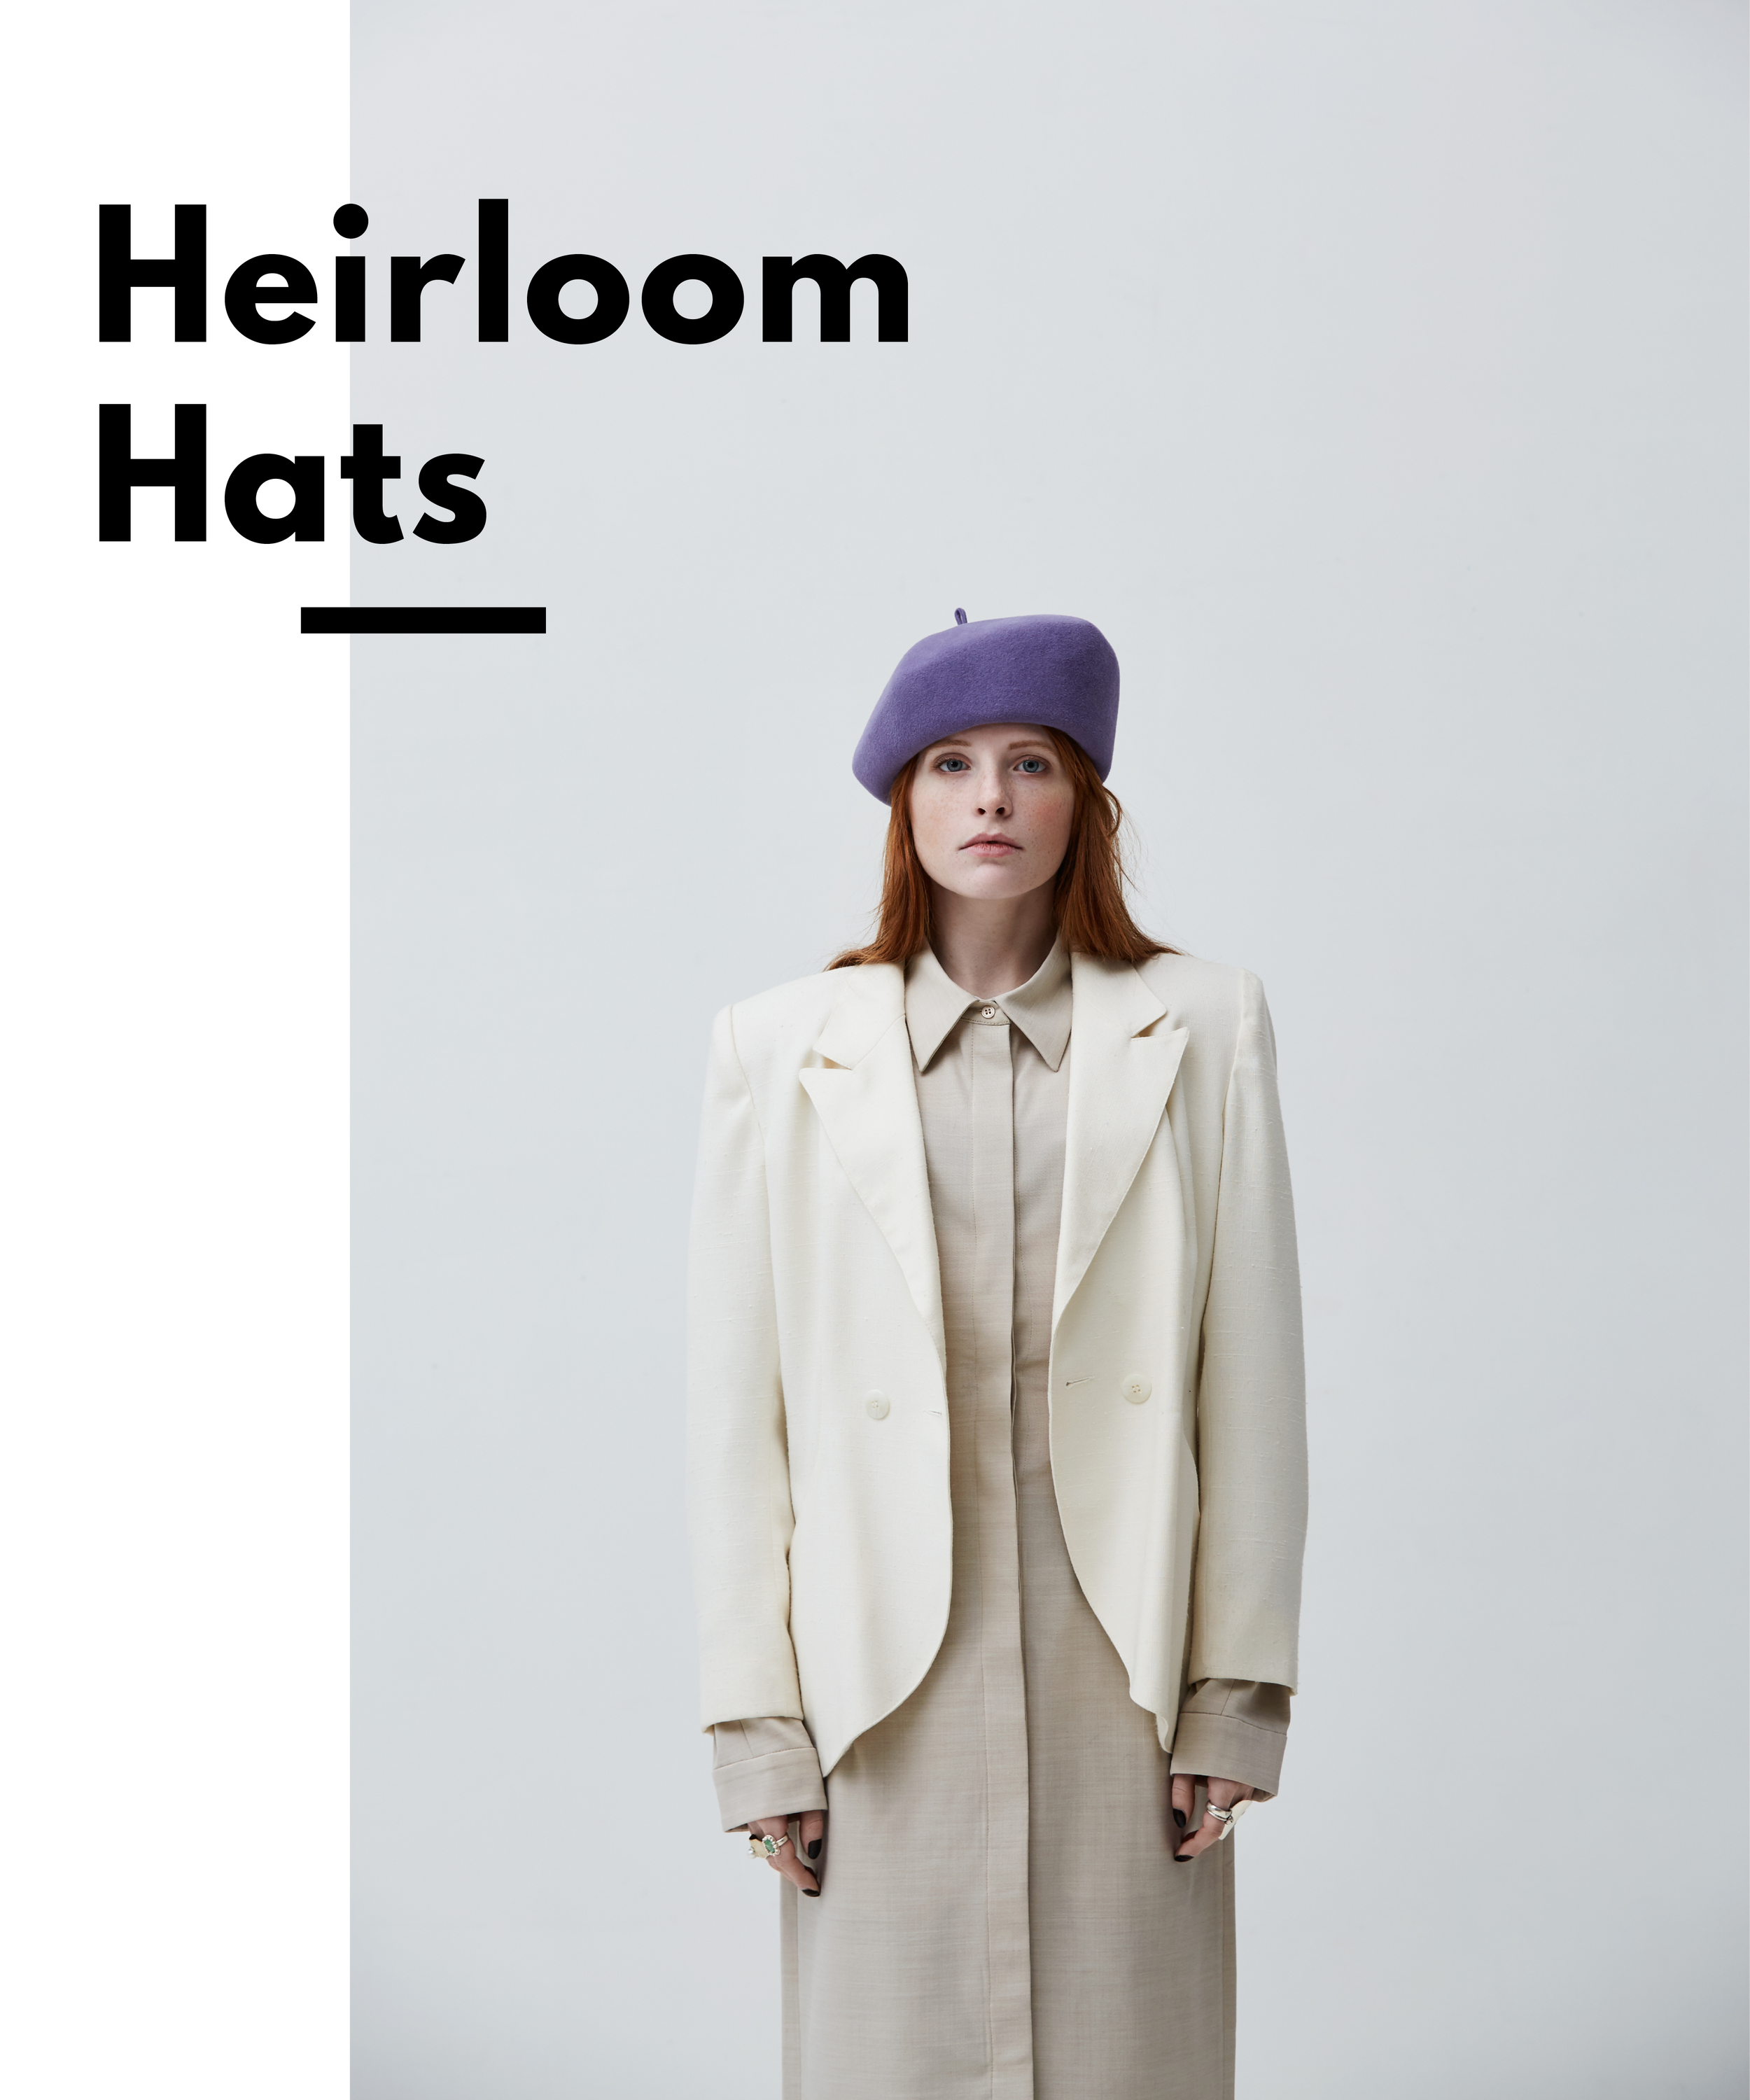 Shop Heirloom Hats at the One of a Kind Show, March 27 - 31